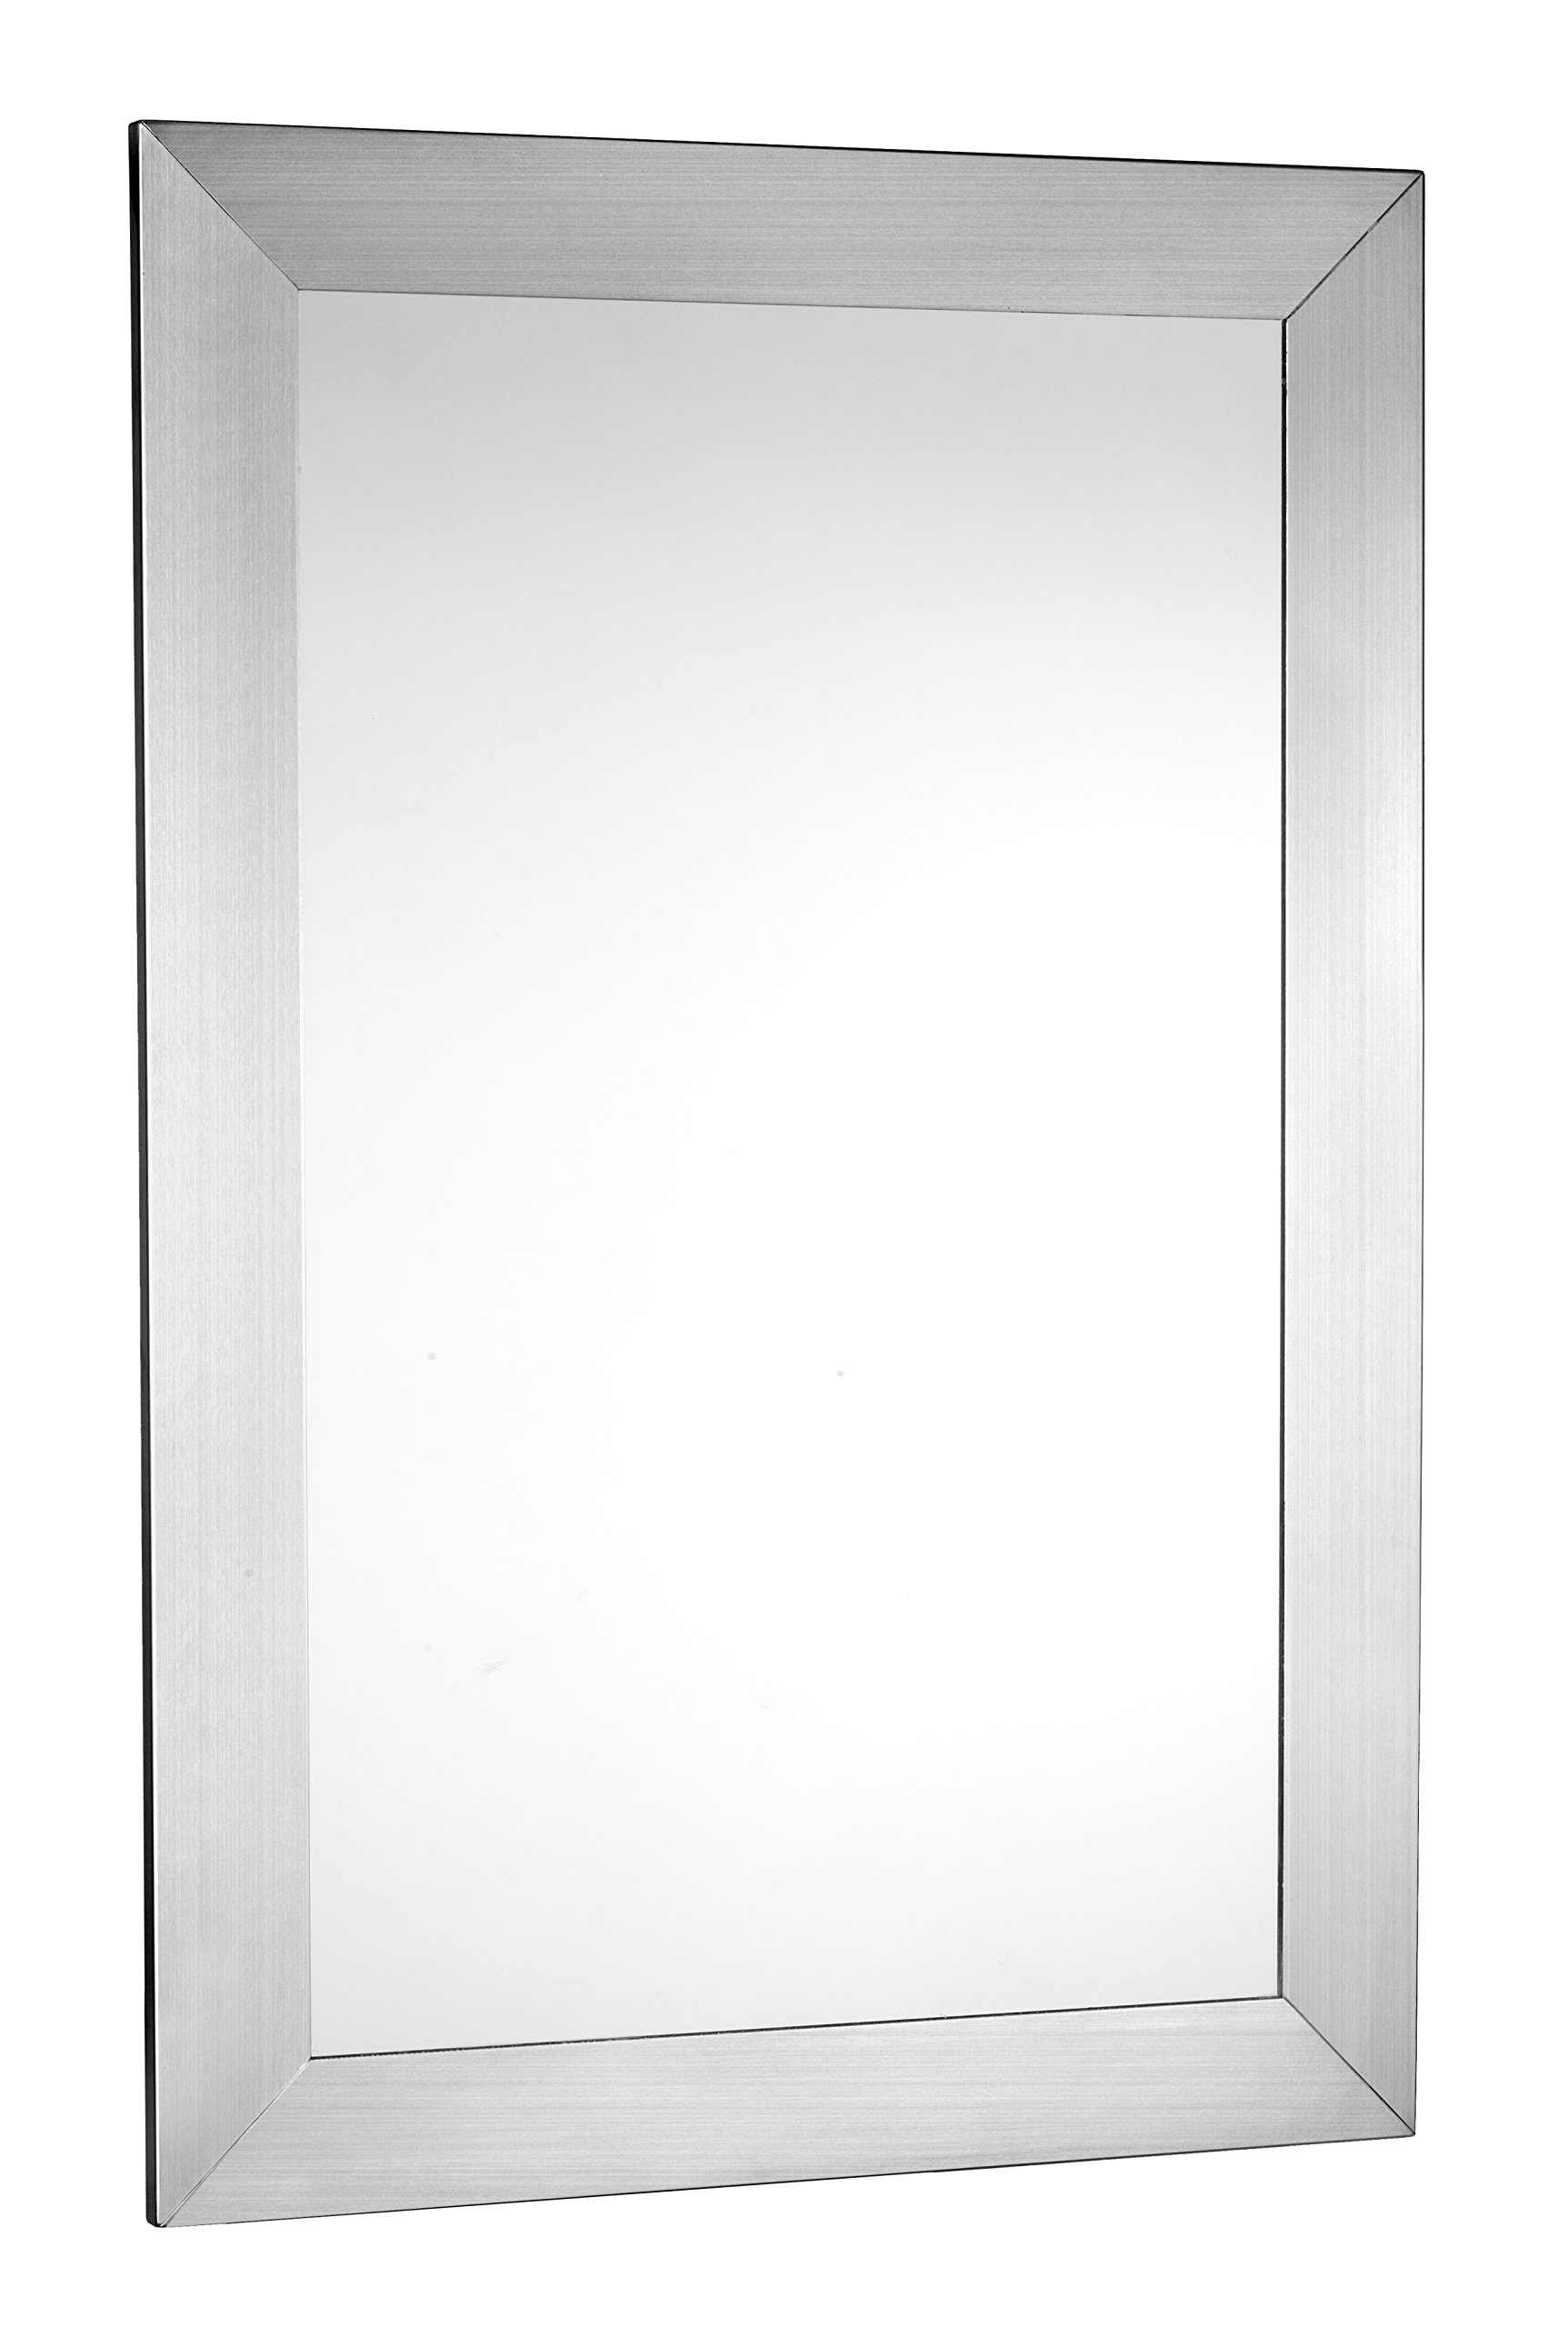 Croydex Parkgate Rectangular Mirror 36-Inch x 24-Inch with Brushed Stainless Steel Frame and Hang N Lock Fitting System by Croydex